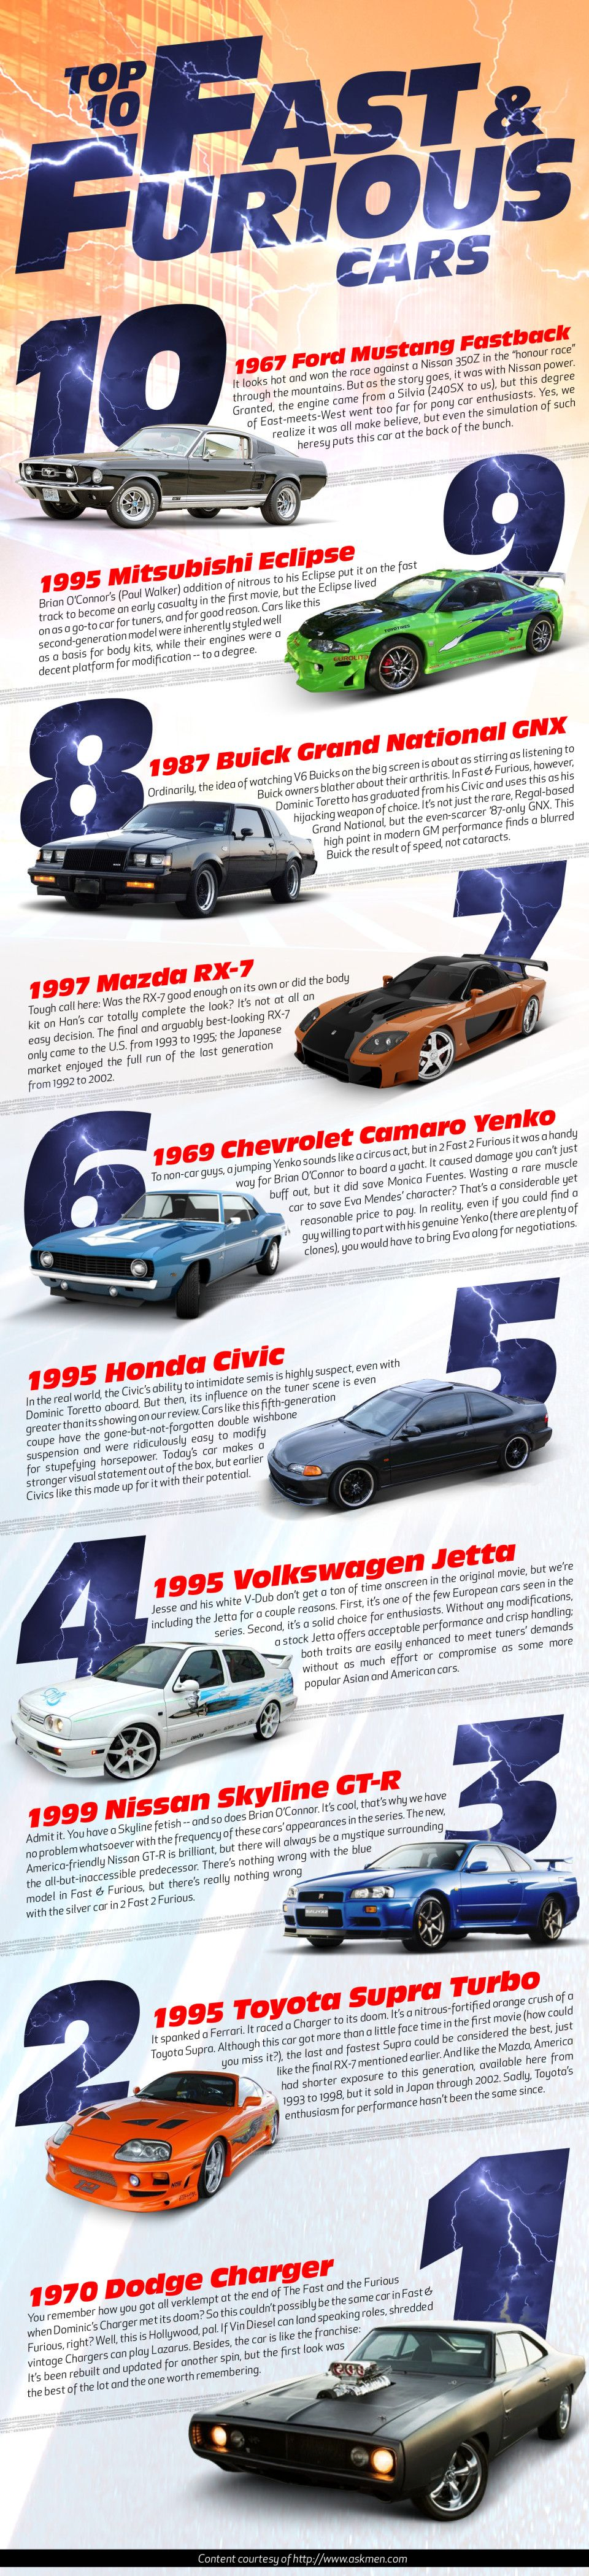 Cars Archives Page Of Cars Luxury Cars And Car Stuff - Fast 4 car list